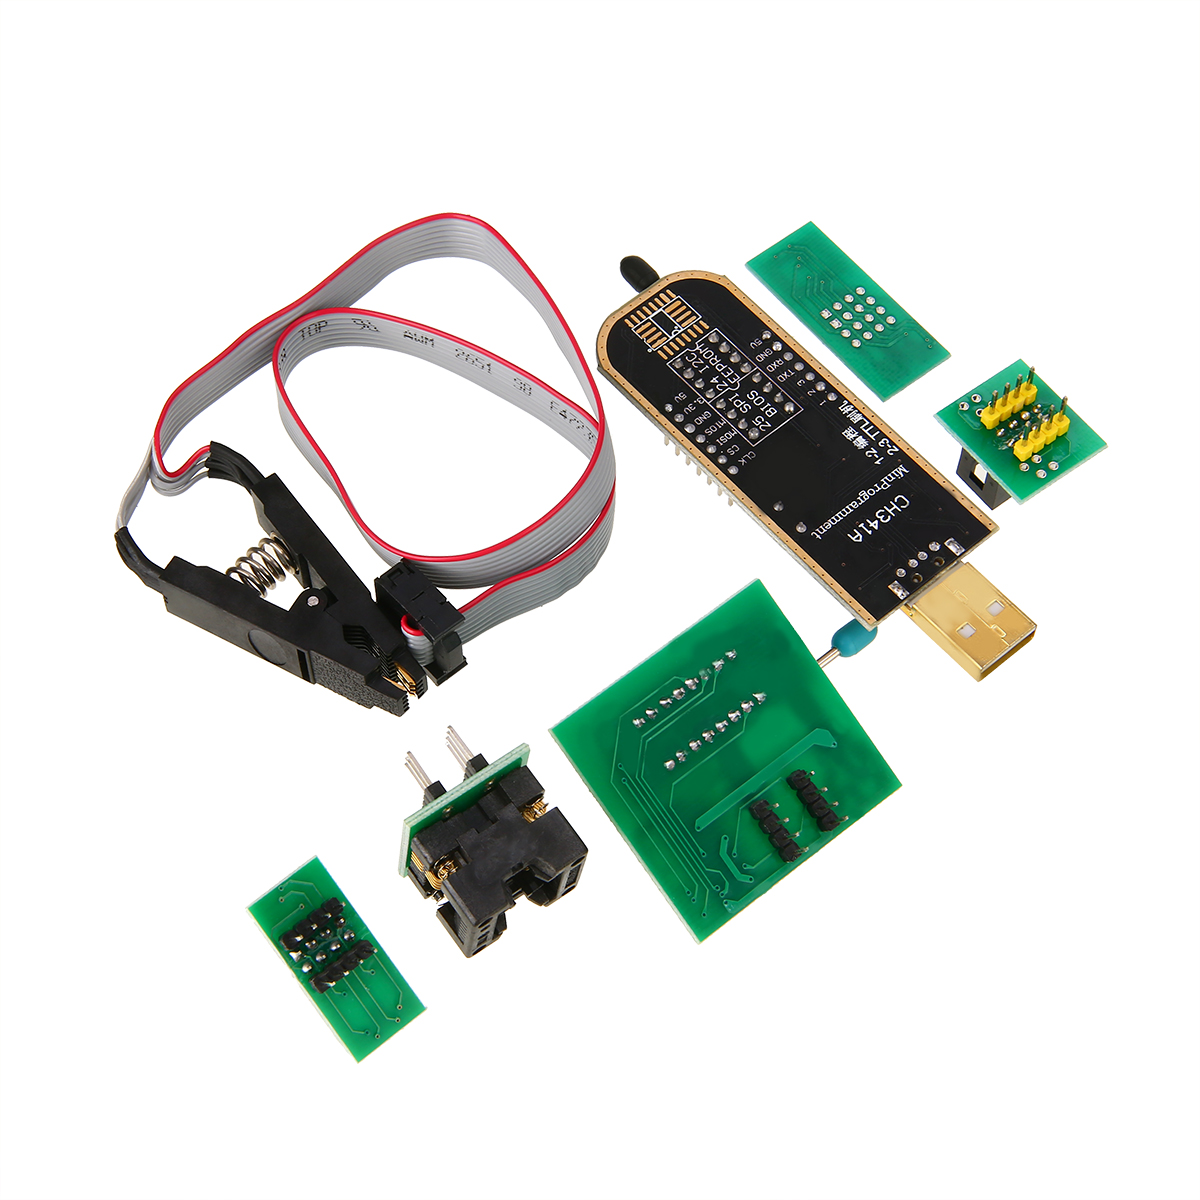 1 Set New For Eeprom Flash Bios Usb Programmer Ch341a Soic8 Clip To Spi Converter 18v